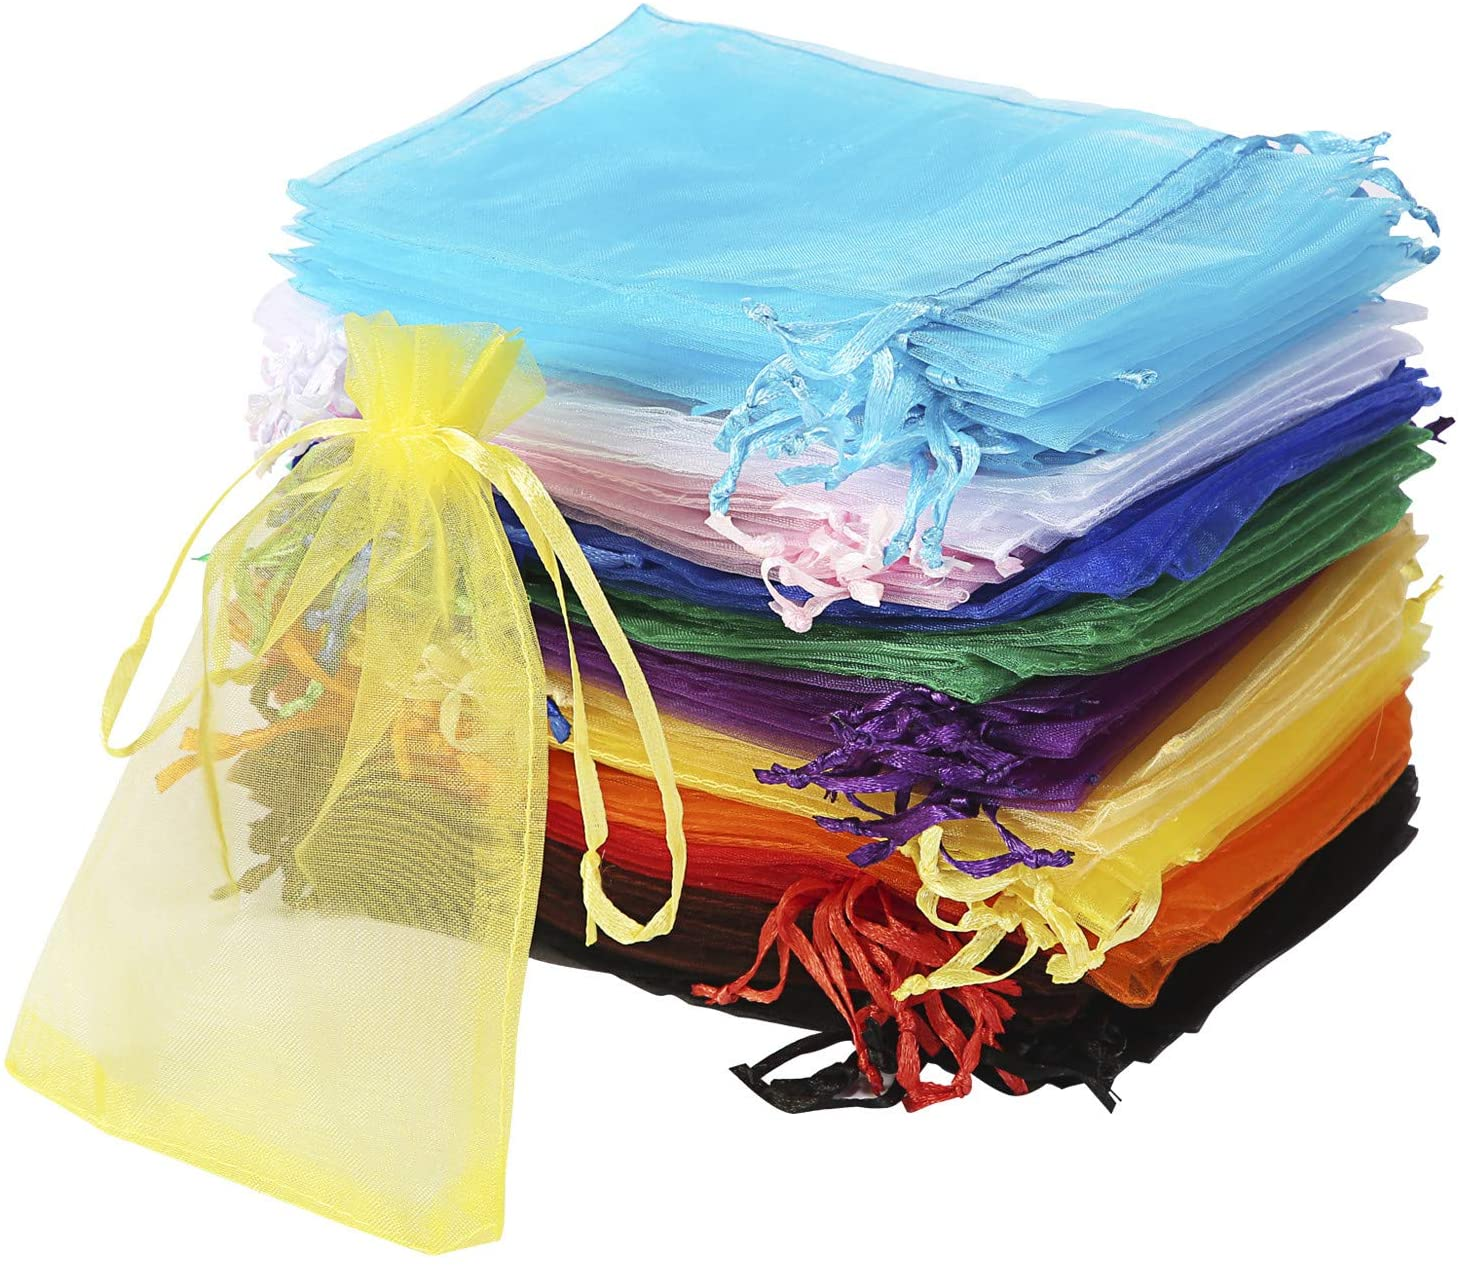 72 pieces Organza Drawstring Pouches Assorted Fancy Colors 2-3 4x3-12 DBX1292F